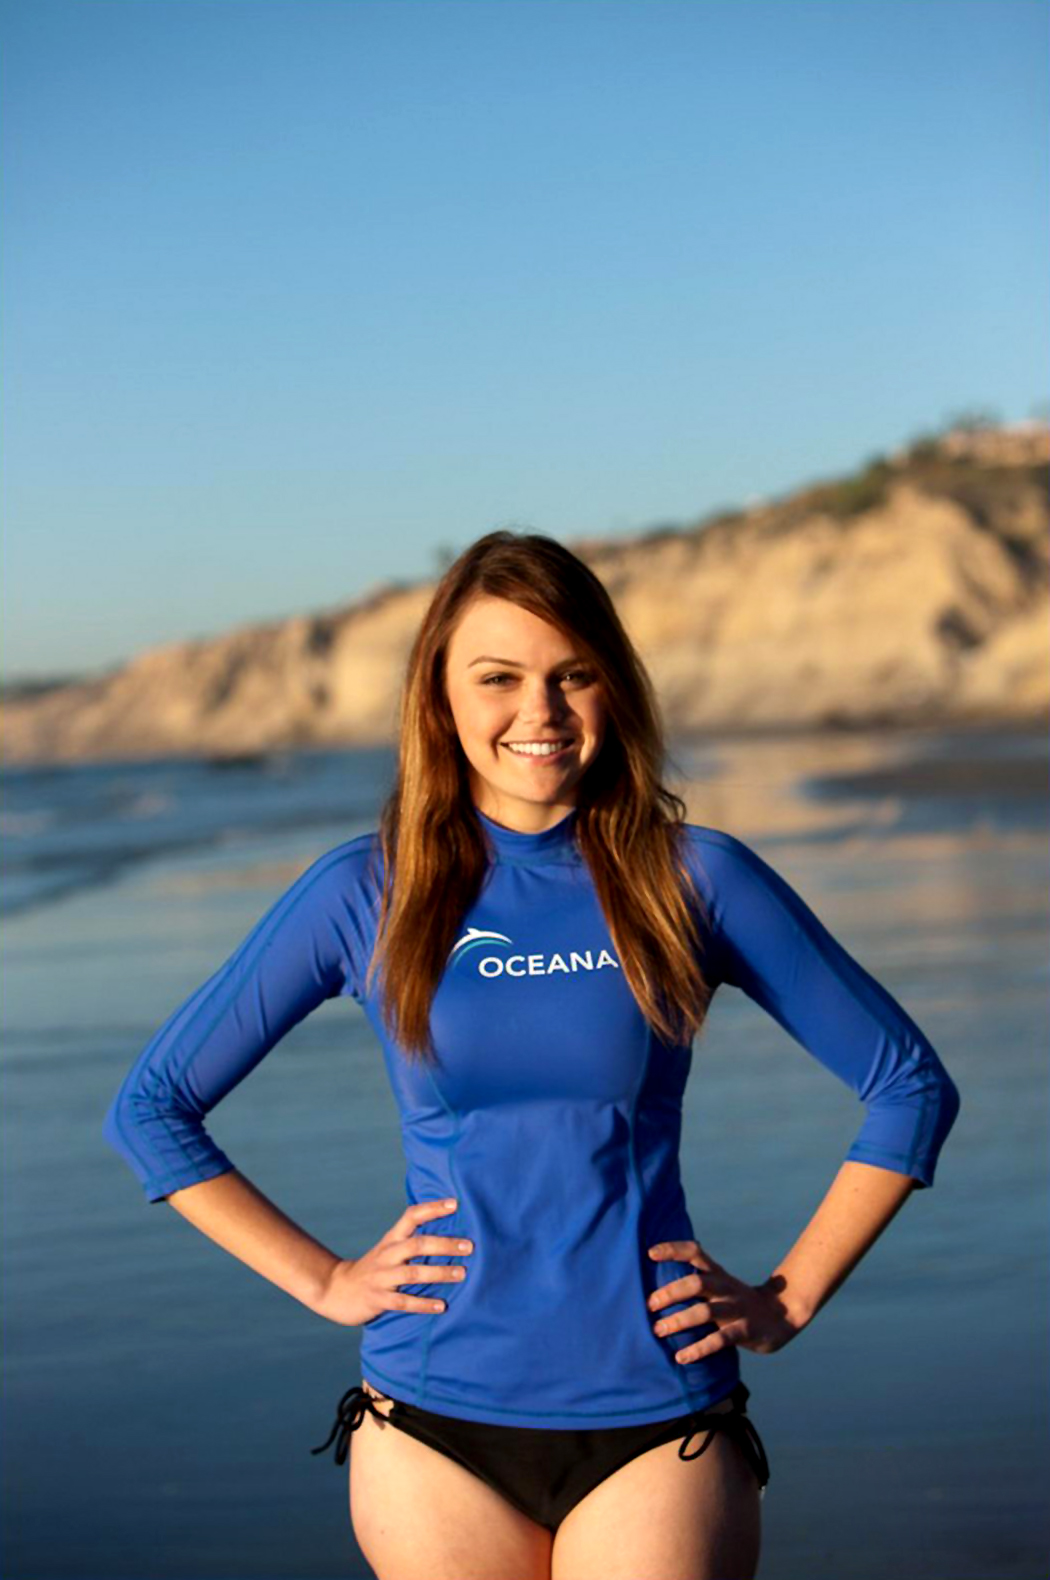 Aimee Teegarden 2012 : Aimee Teegarden – PSA for Oceana-01